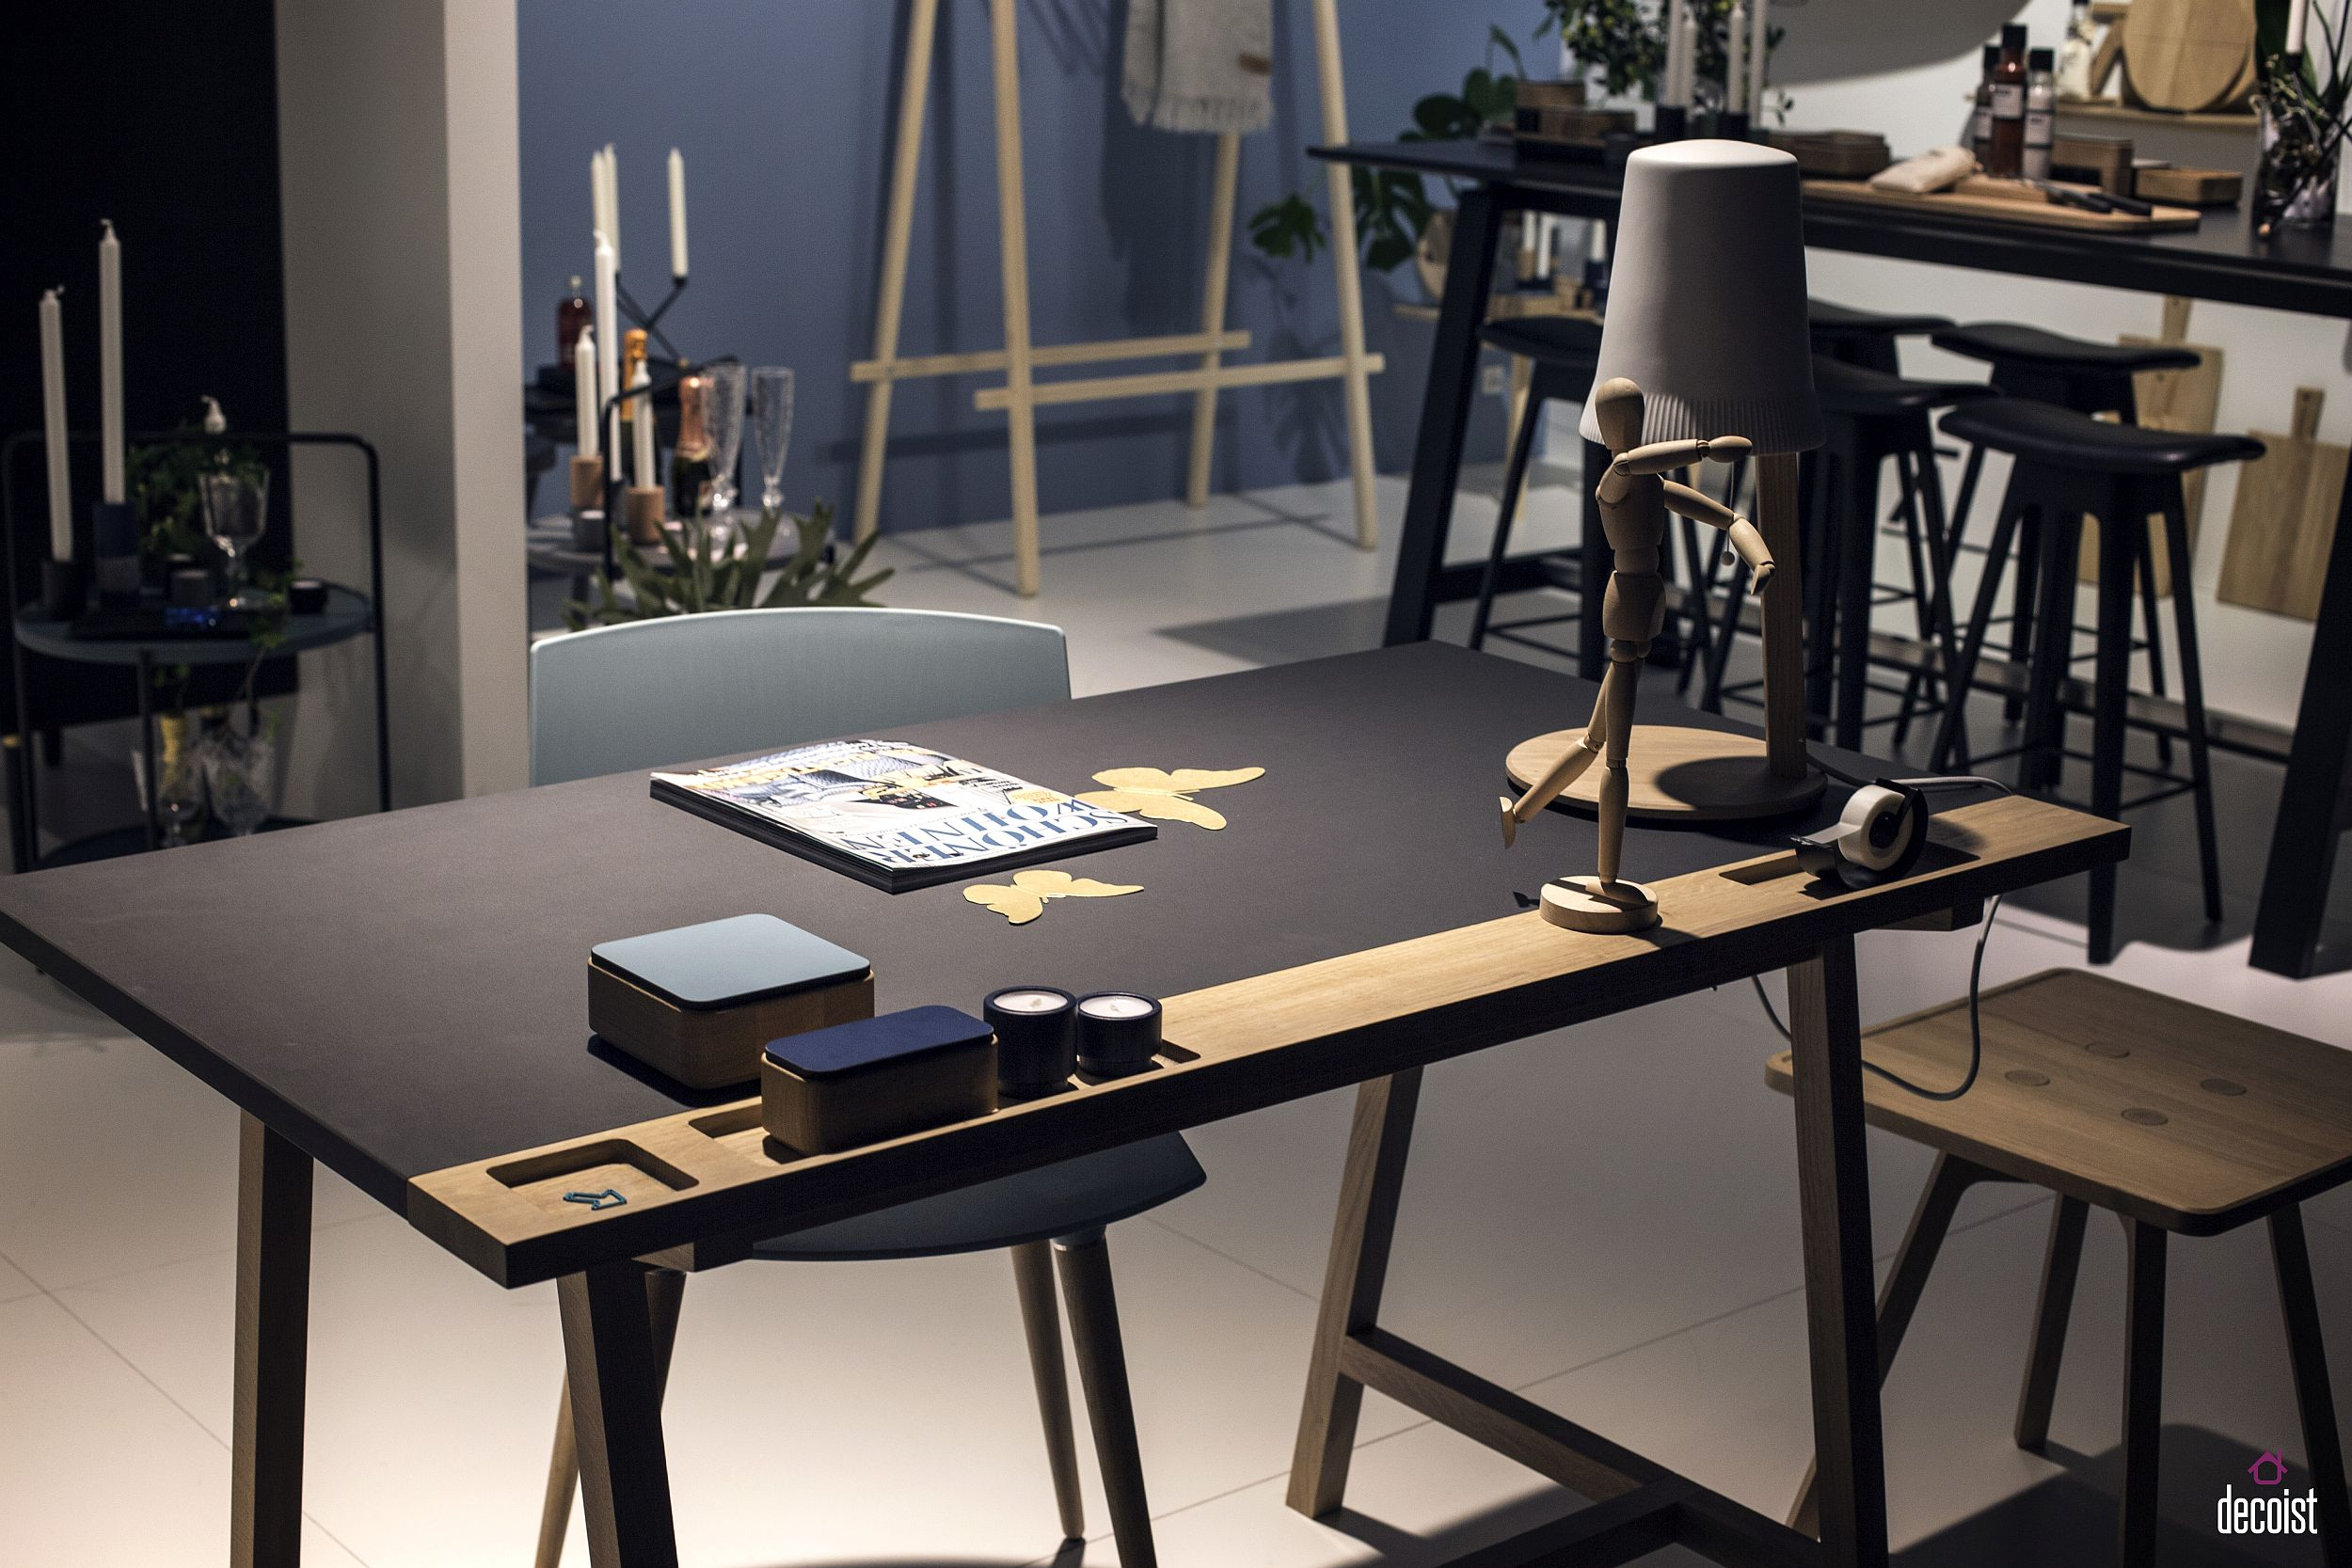 D1-Desk-by-KATO-from-Andersen-Furniture